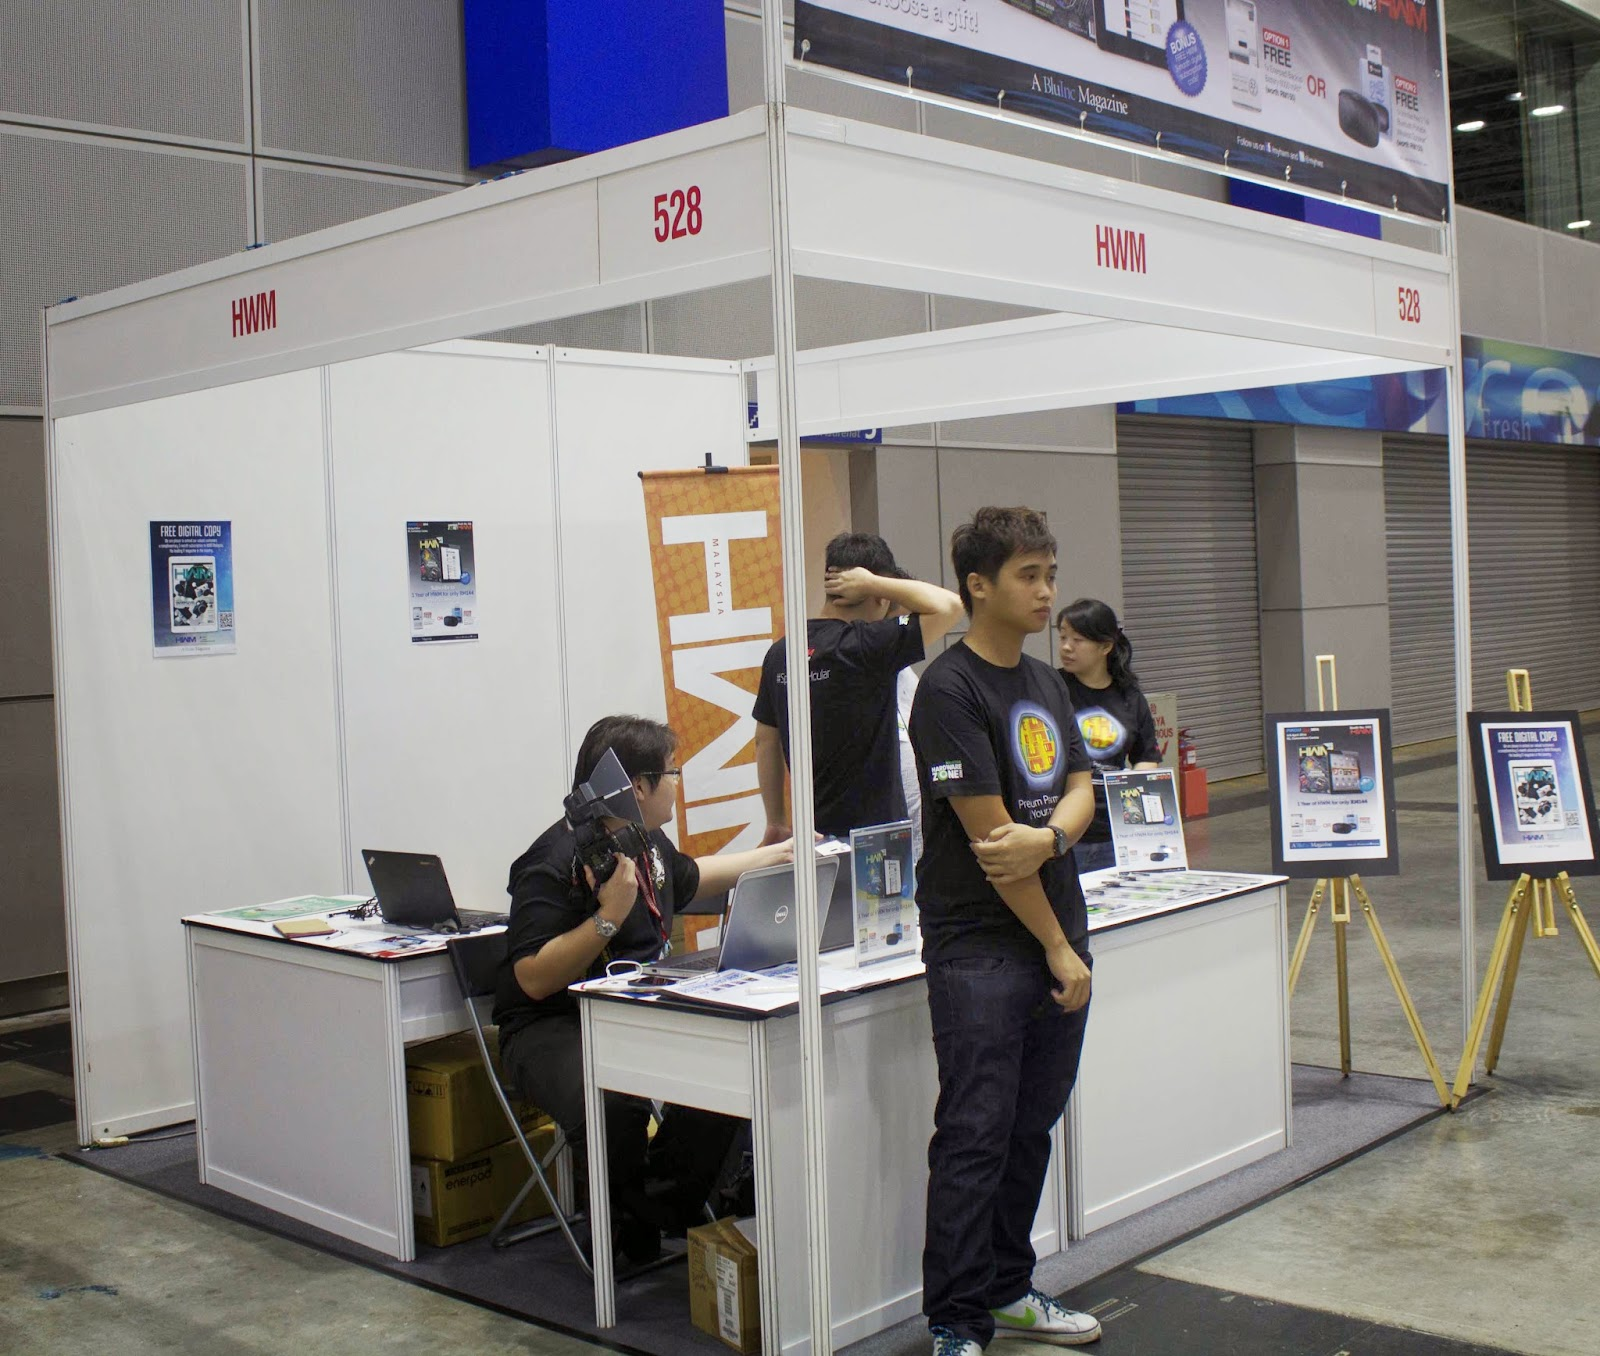 Coverage of PIKOM PC Fair 2014 @ Kuala Lumpur Convention Center 399